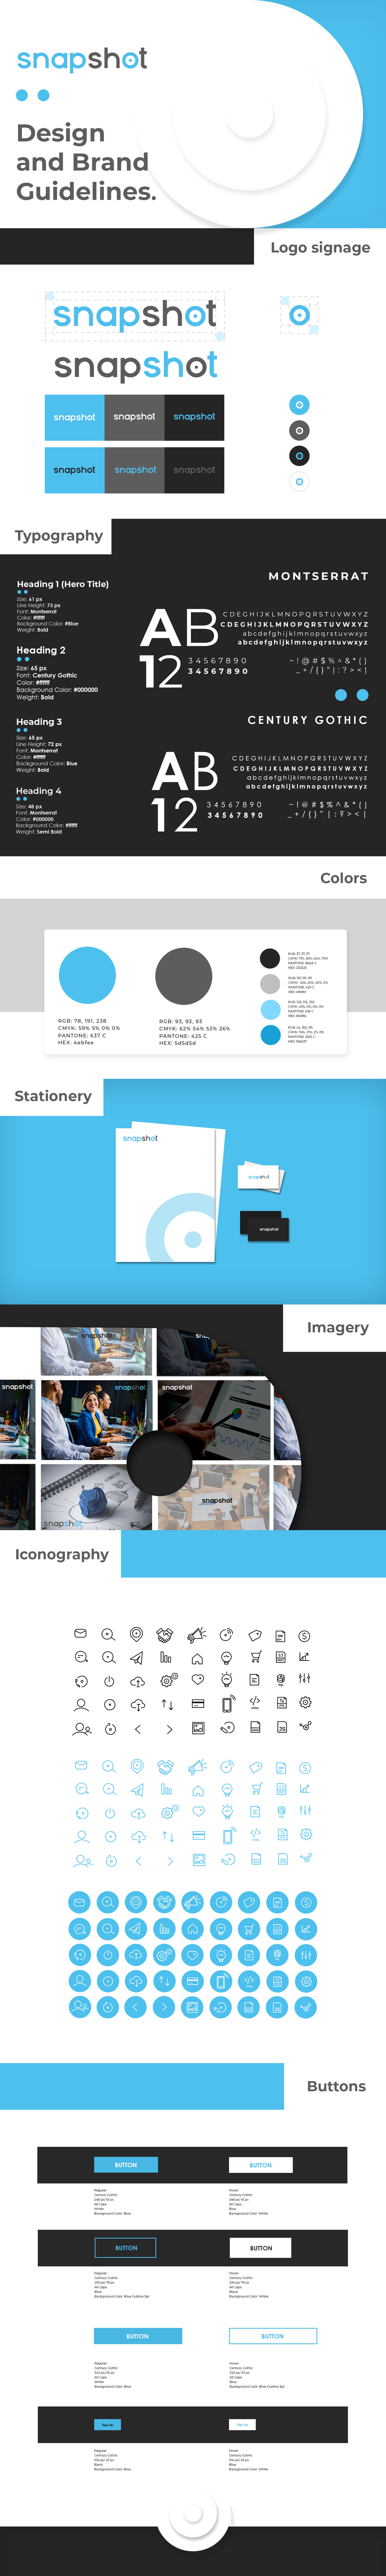 M1 Software & Snapshot - Creative Project